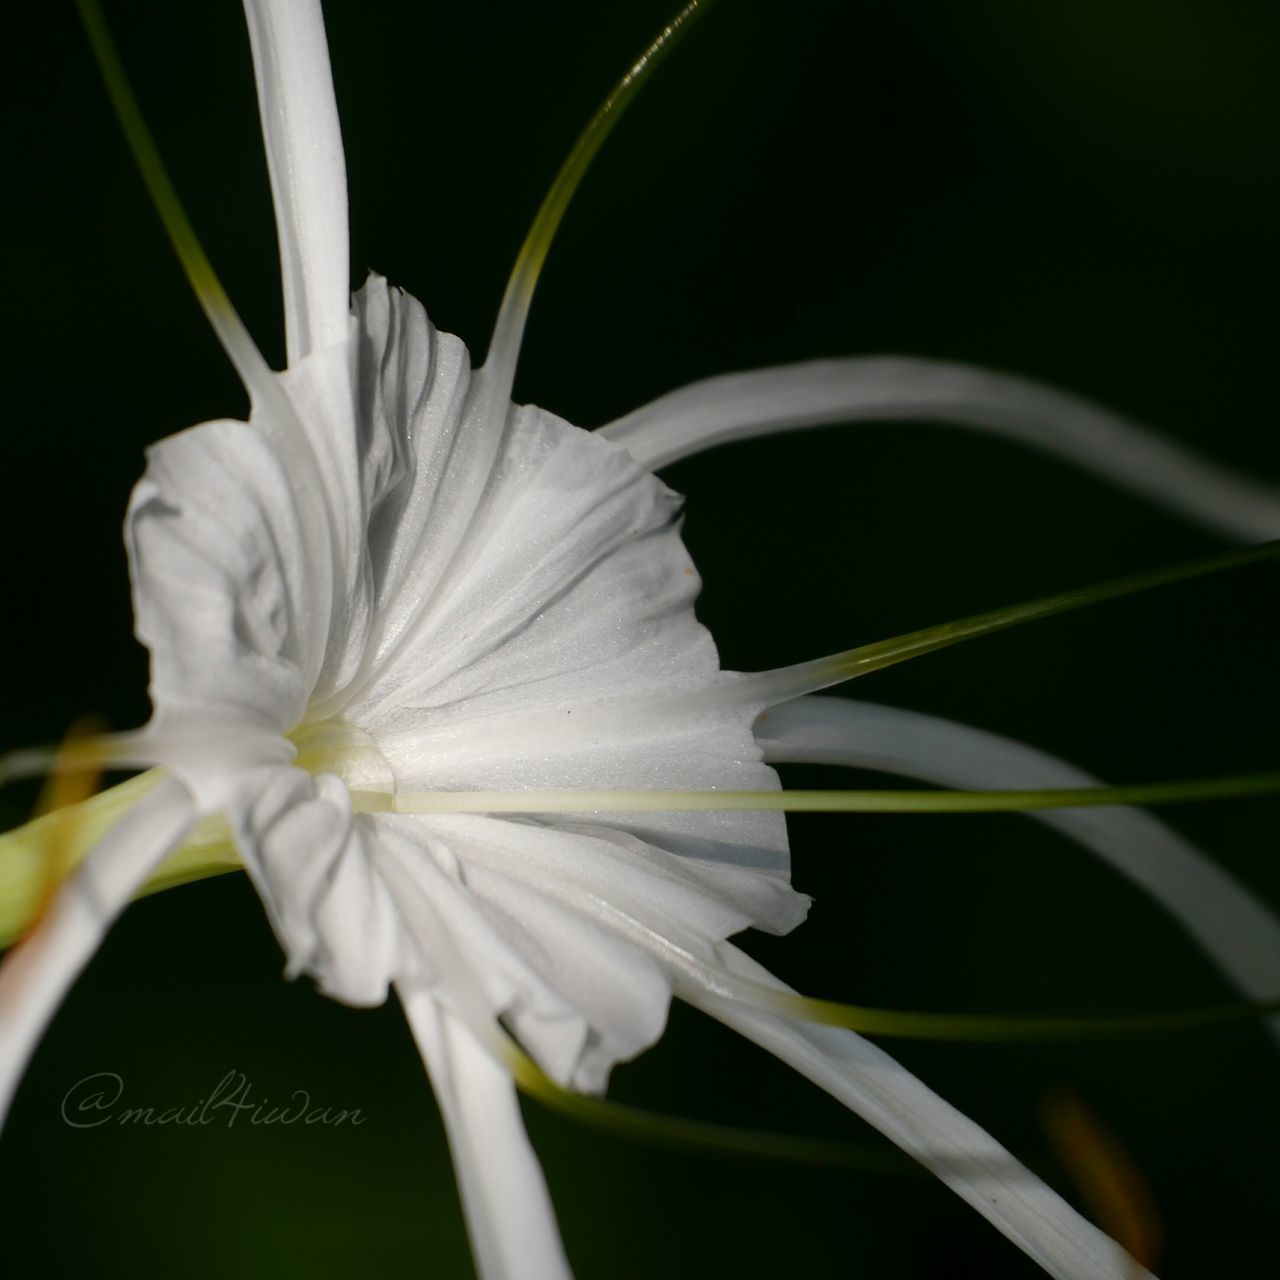 Flower Petal Flower Head Close-up Fragility Plant Black Background No People Beauty In Nature Nature Outdoors Freshness Day Lumix Pure And Untouched (raw Image)